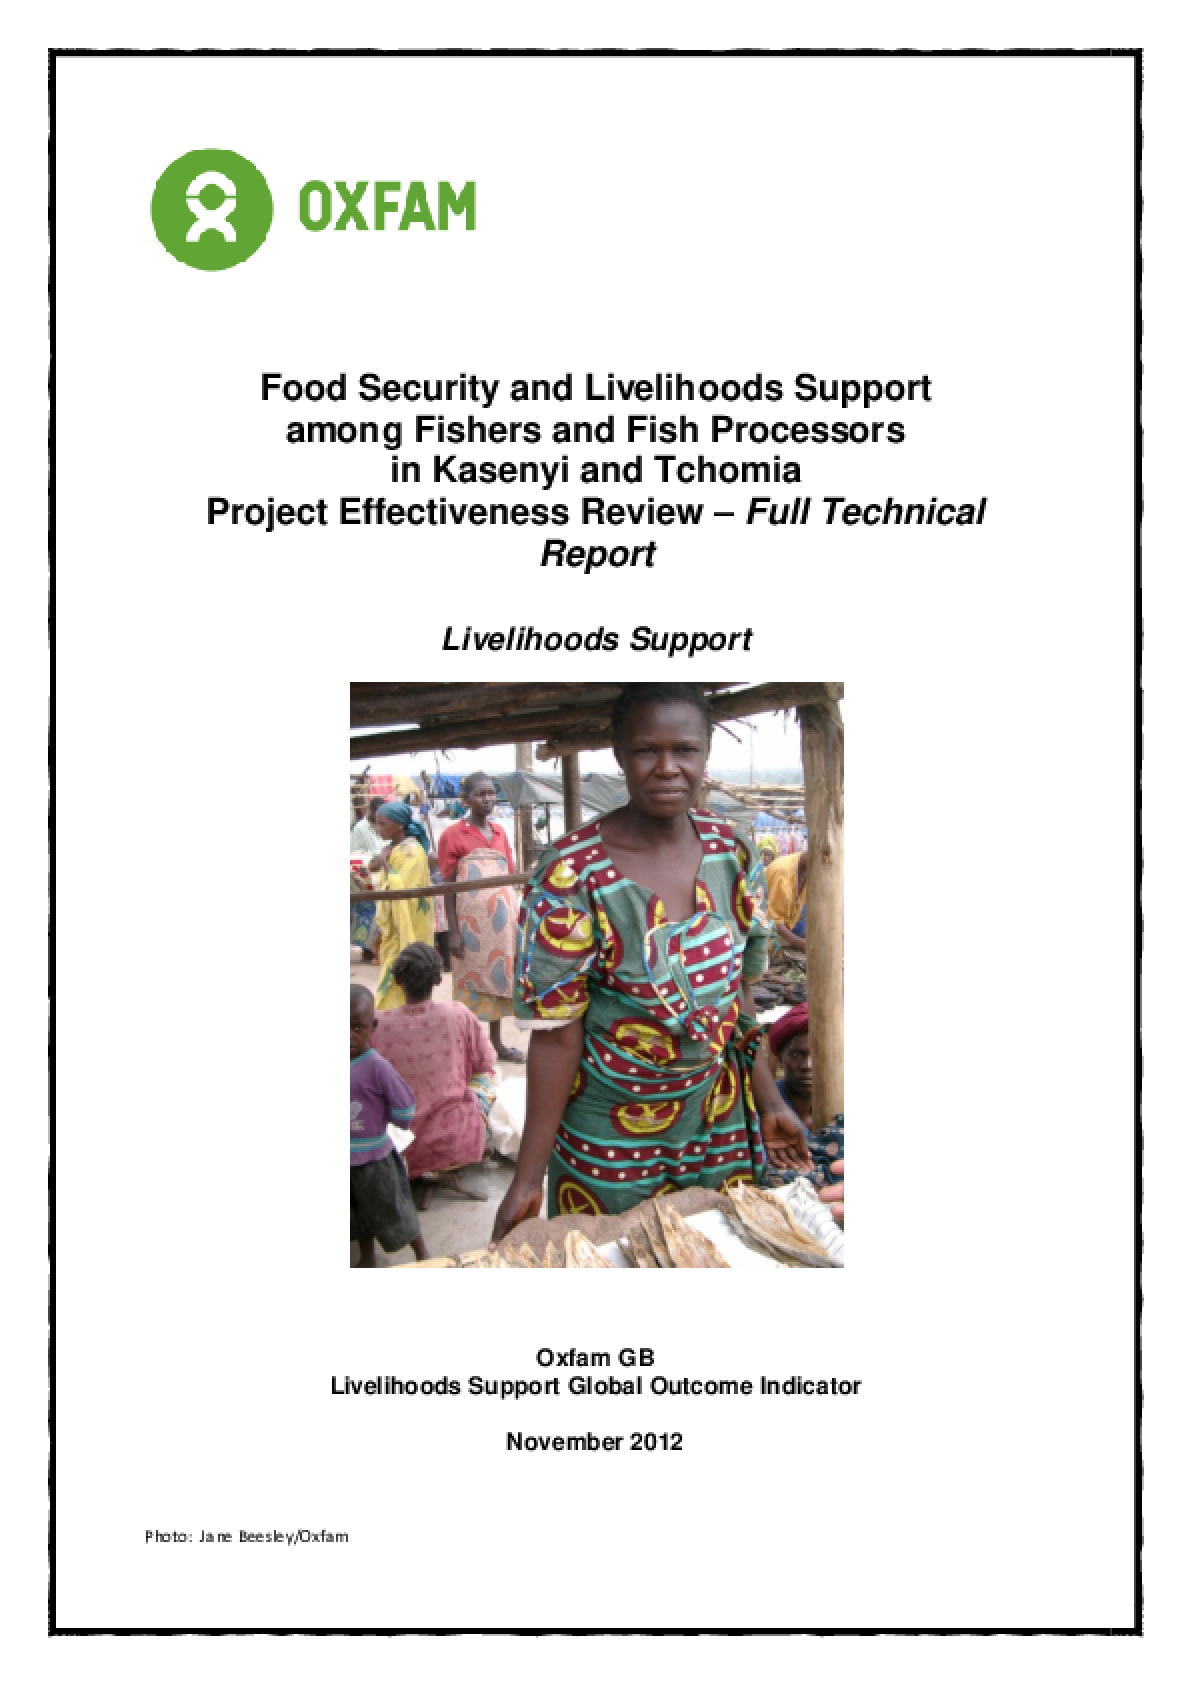 Effectiveness Review: Food Security and Livelihoods Support among Fishers and Fish Processors, Democratic Republic of Congo